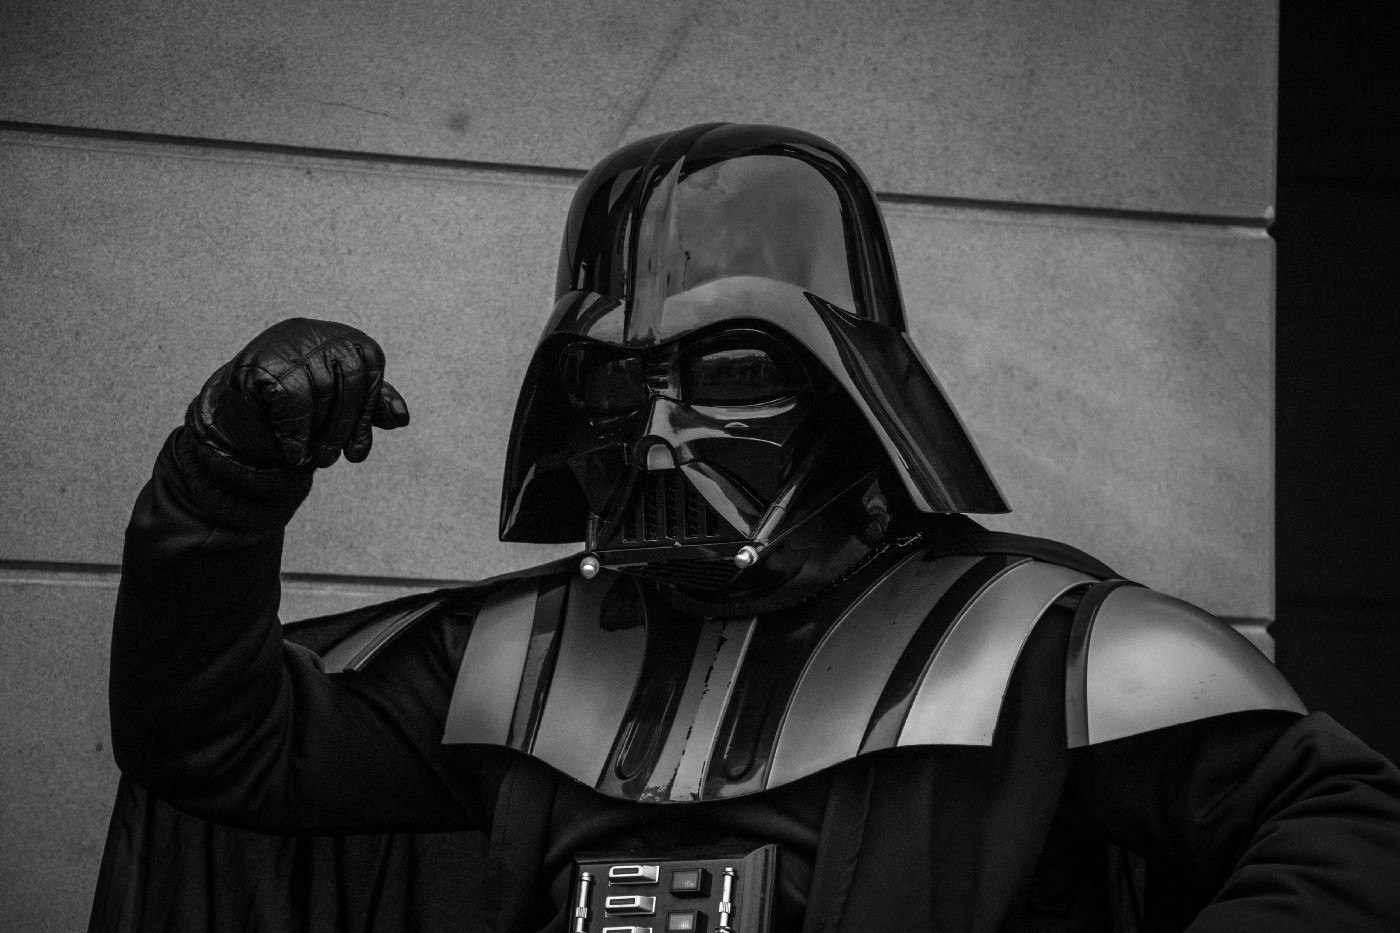 Darth Vader with clenched fist